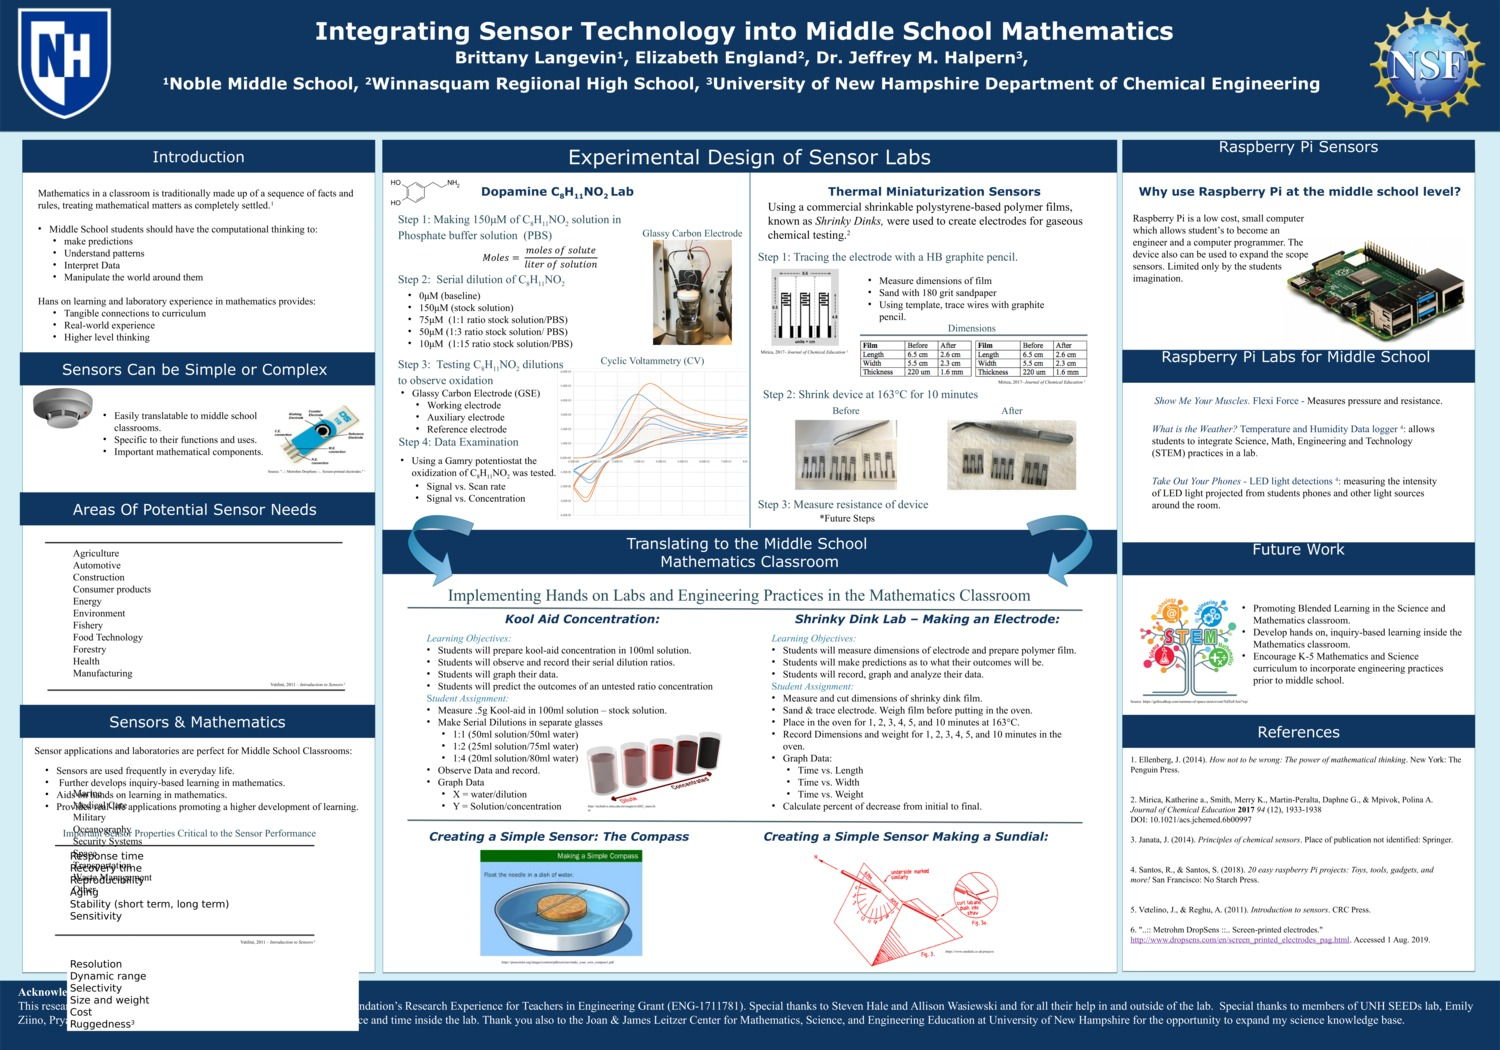 Integrating Sensor Technology Into Middle School Mathematics by bml1019